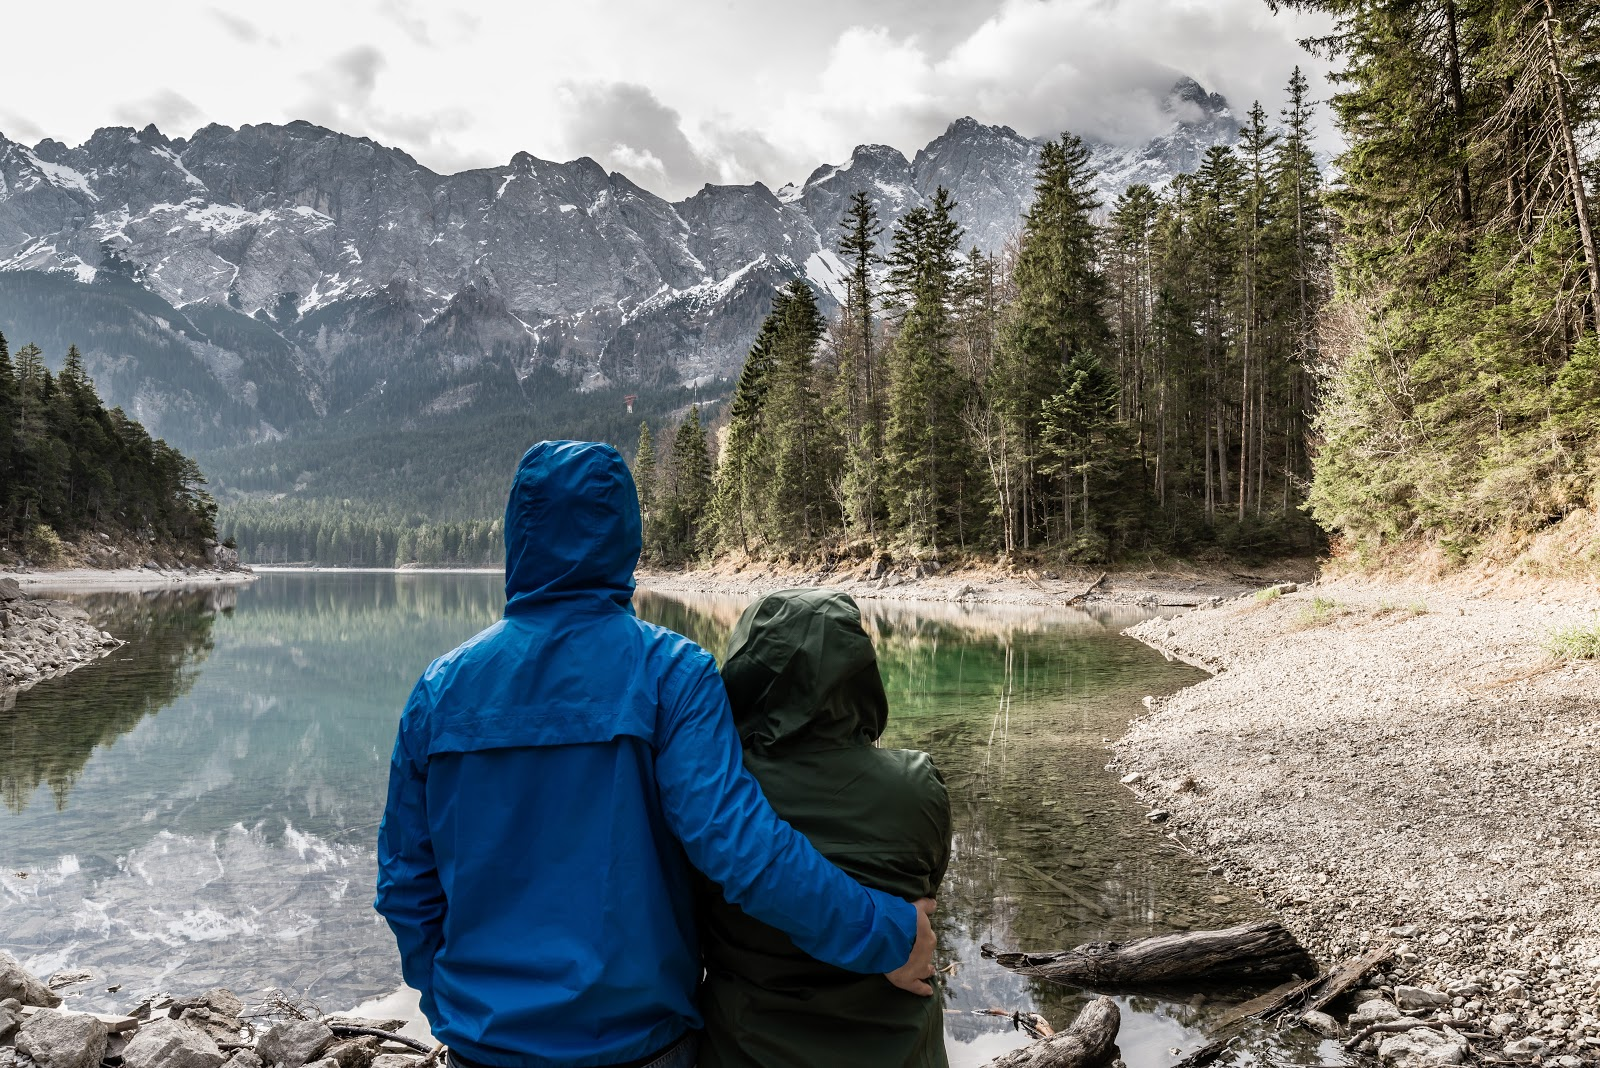 Two people at a mountain lake